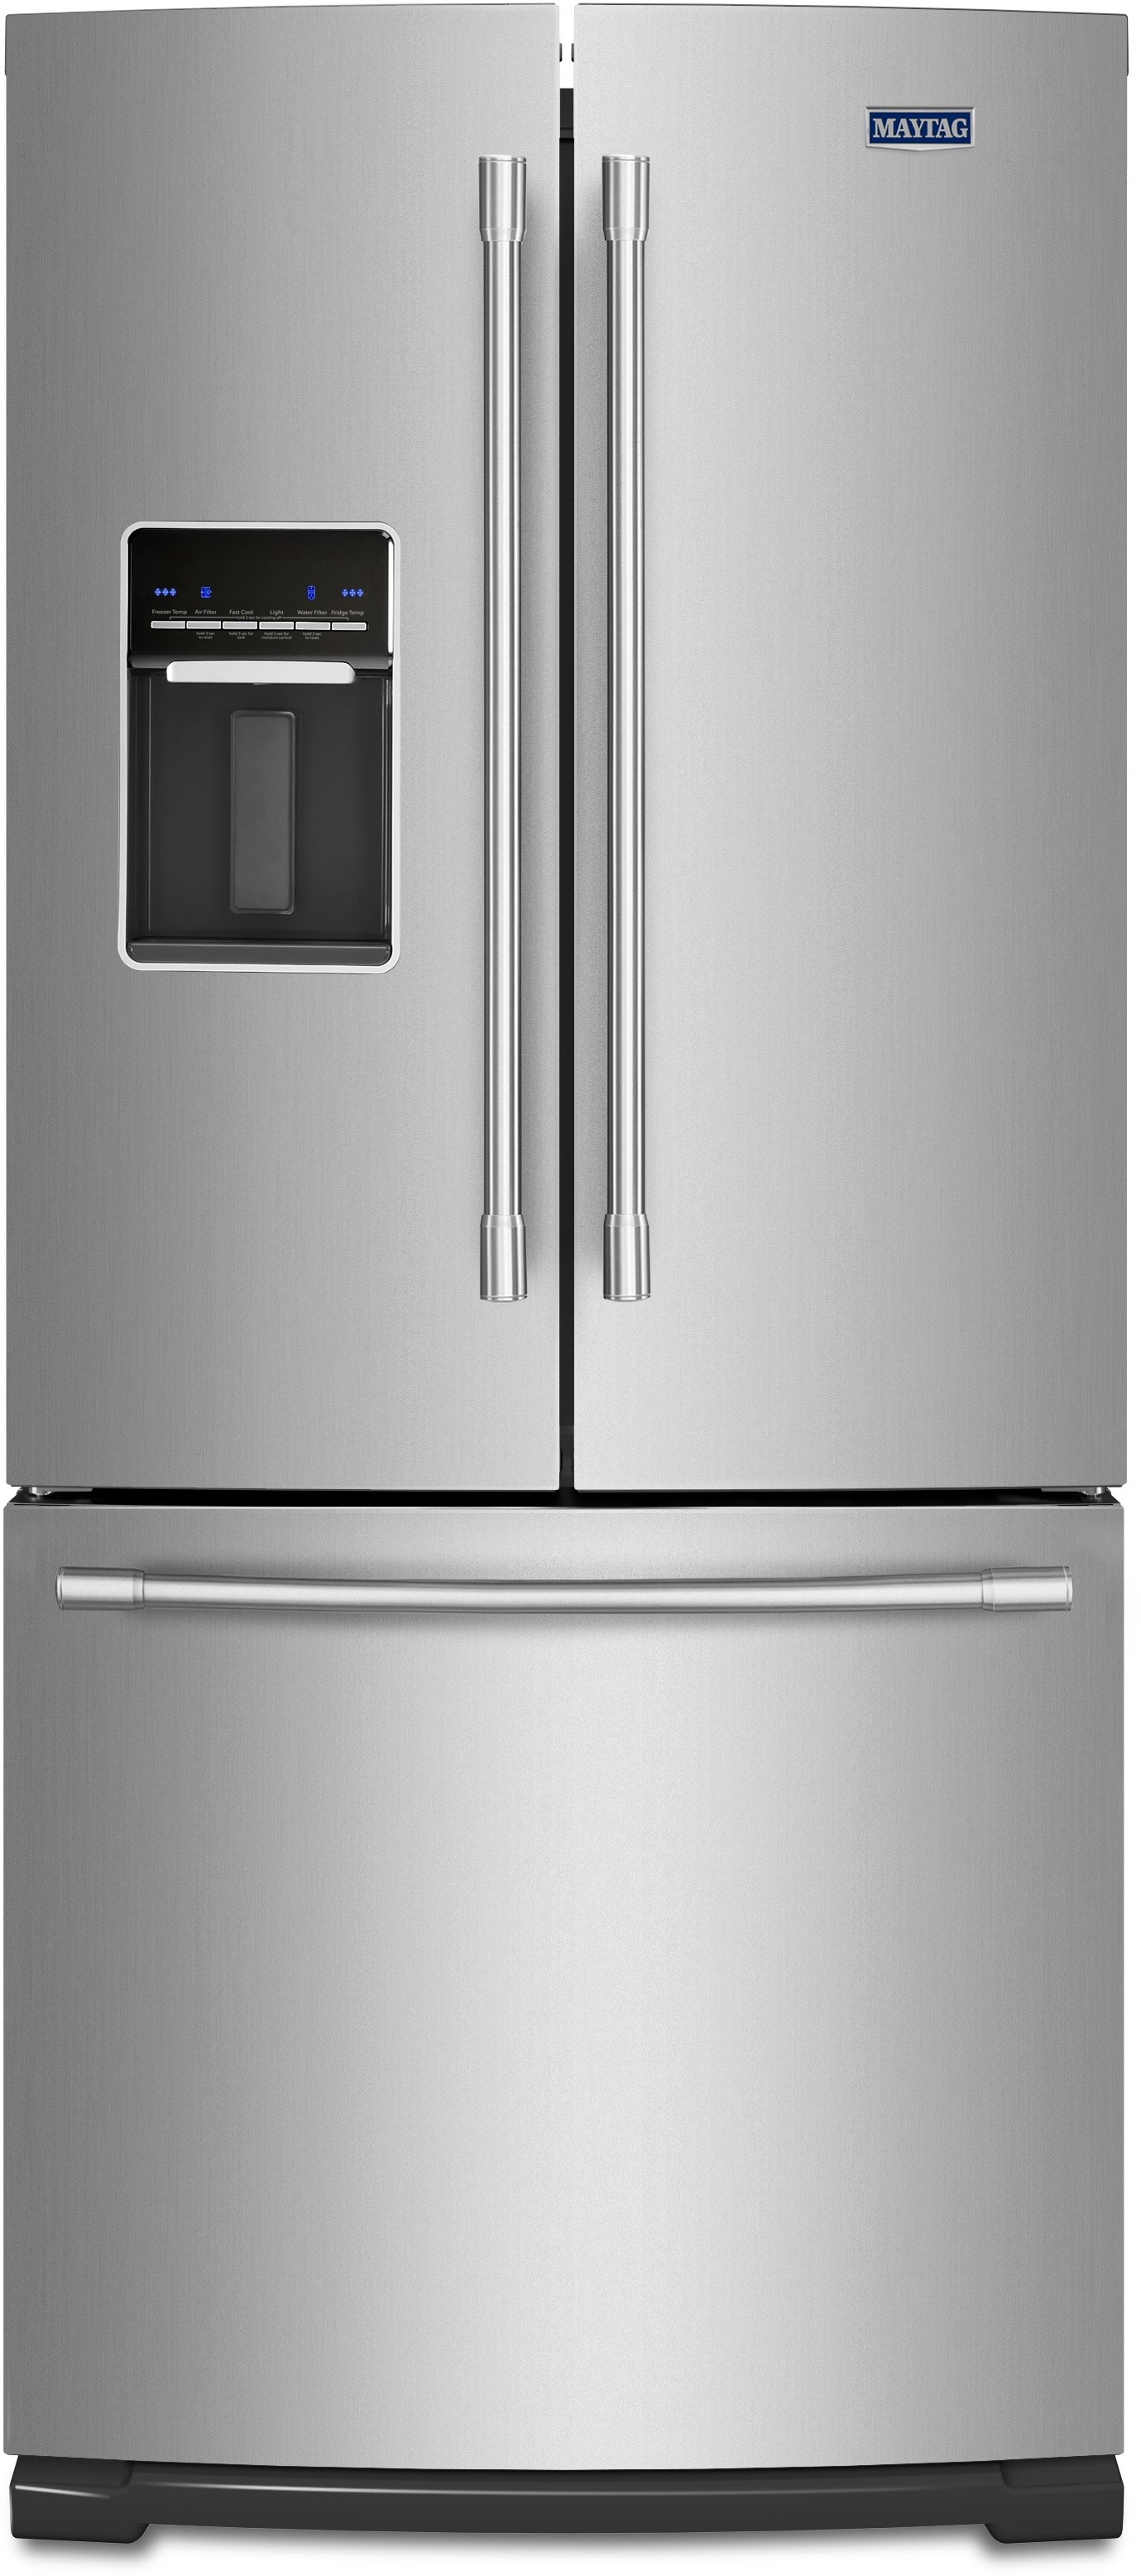 name requesttype series star image cu dispatcher ge specs energy product appliance door profile ft gea french refrigerator